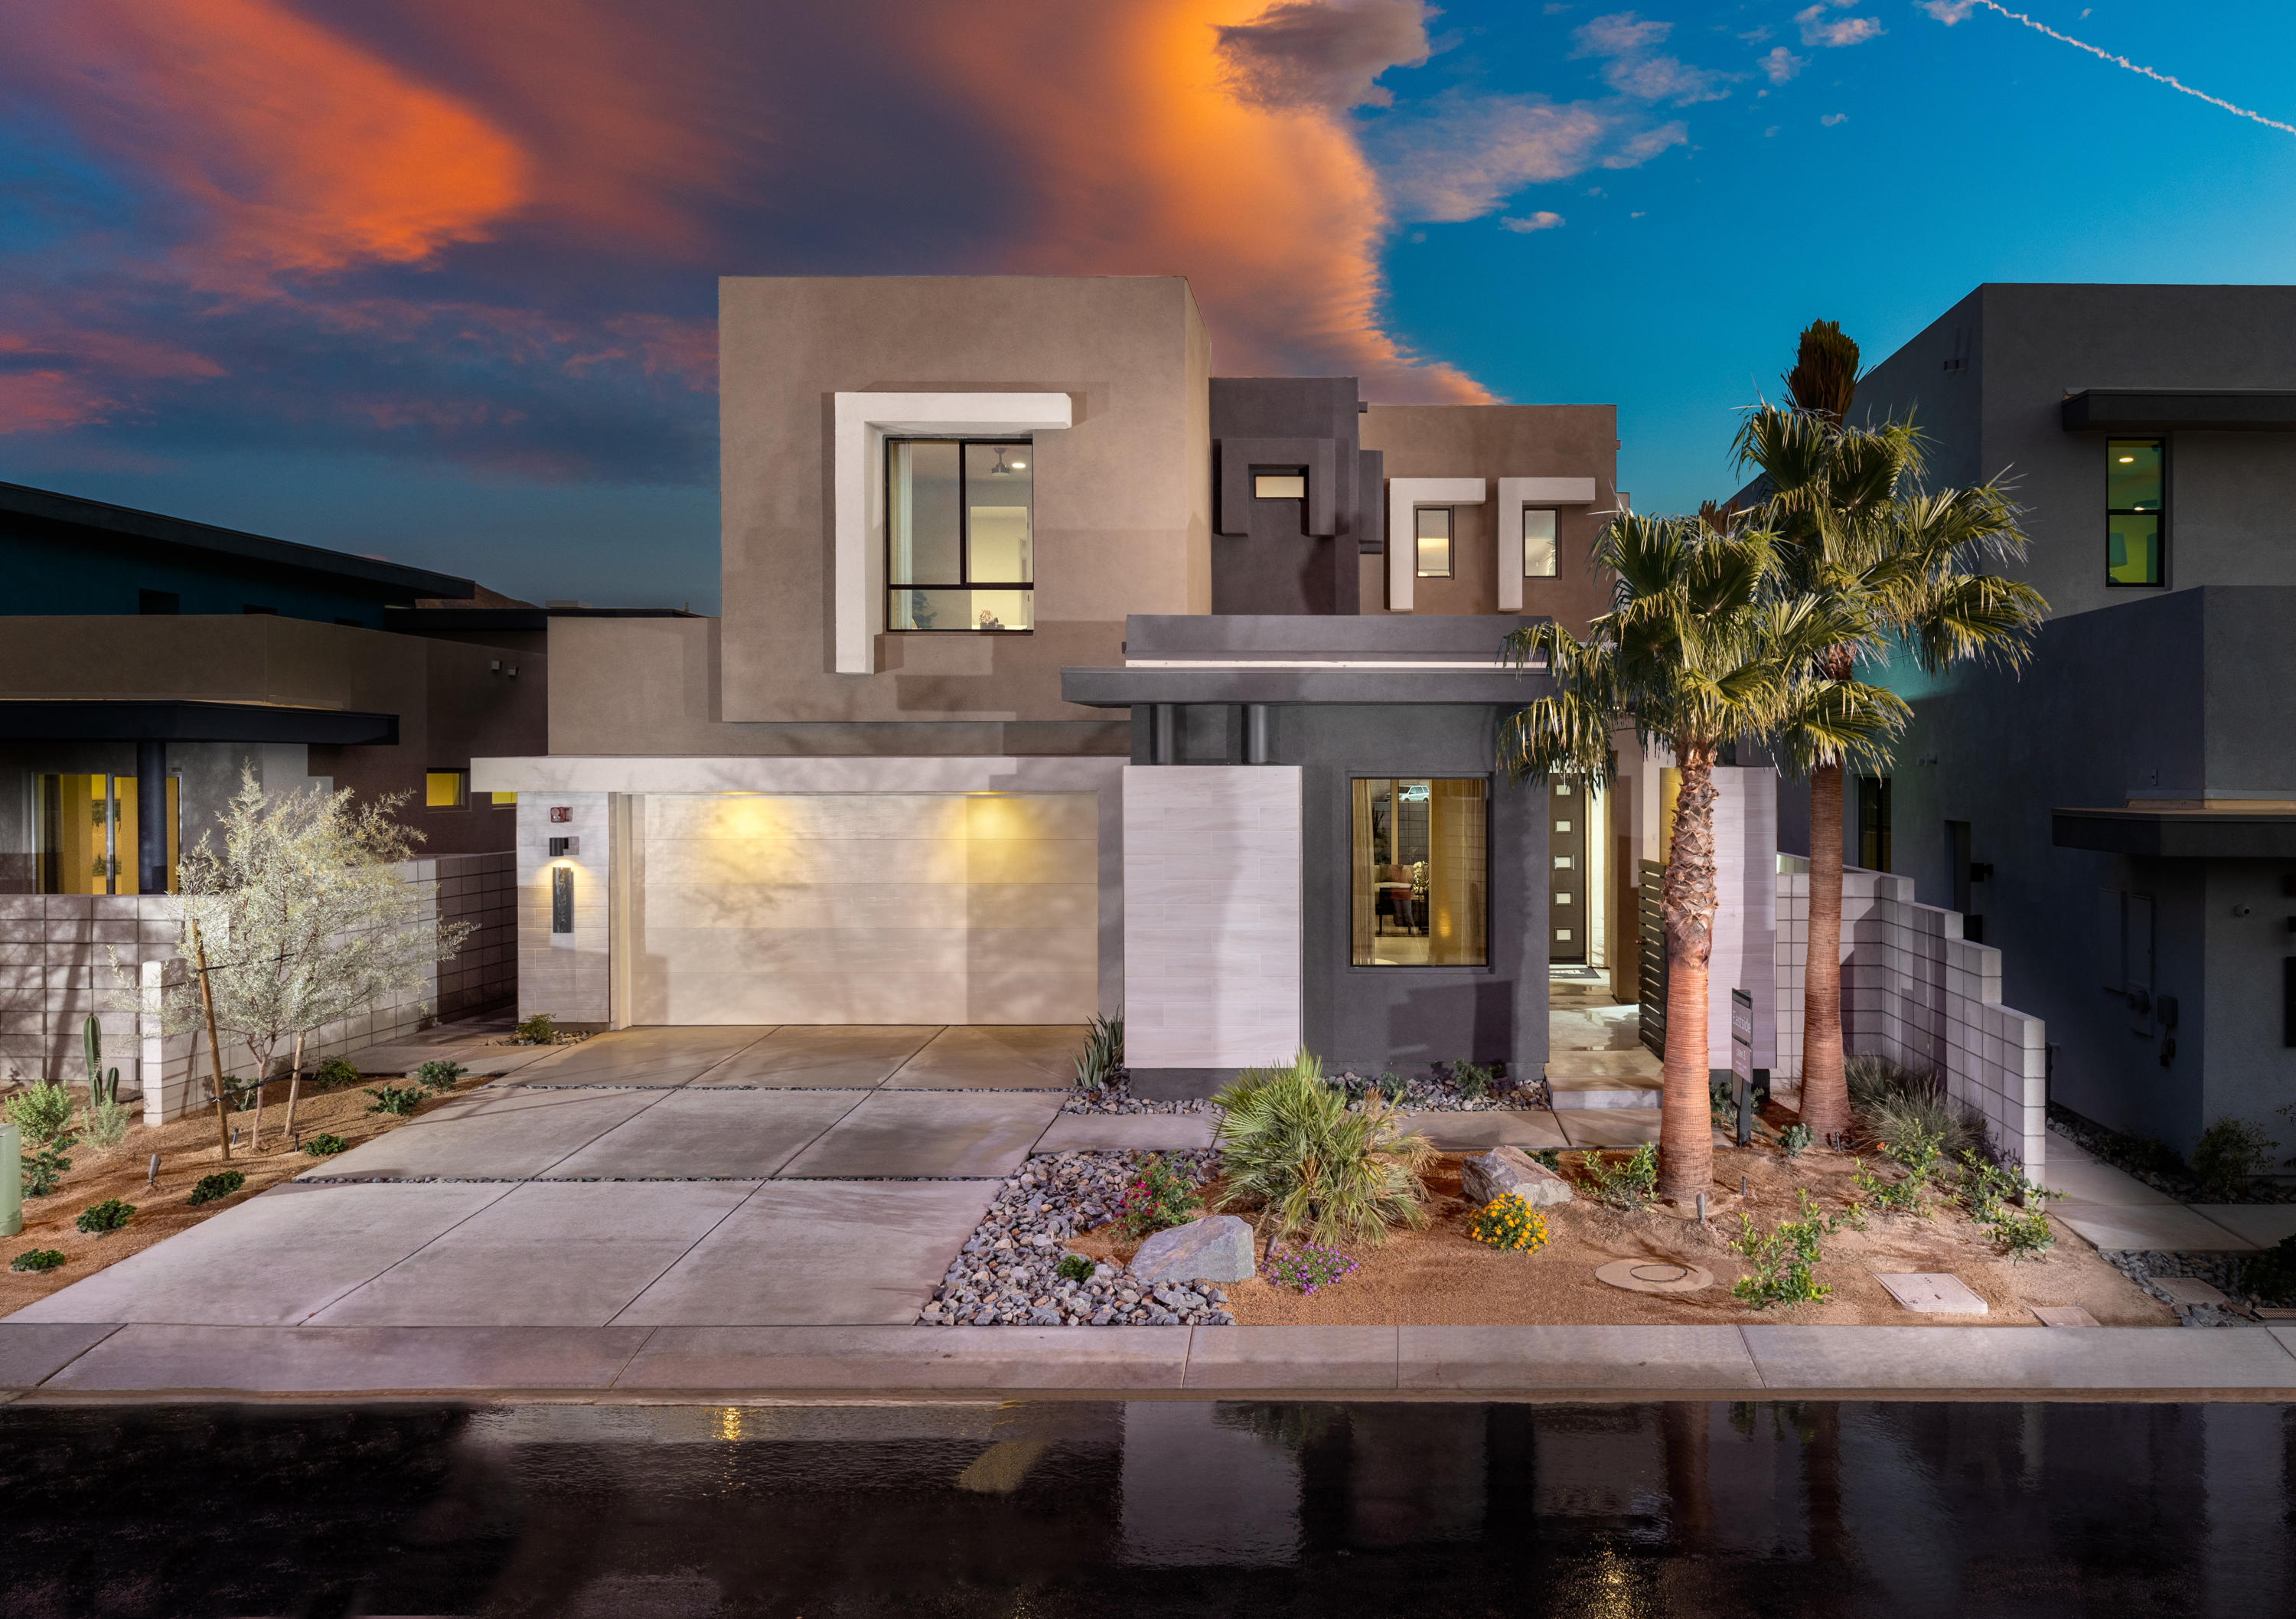 Welcome to the District East, largest floor plan, Eastside Plan 3, Lot 40 on the edge of Palm Springs! 3 Bedroom and 3 Bath.  Master retreat has sitting room and balcony! Plus Jr. Suite with double vanity and walk in closet.  Open concept 21 Century living, 8' low-e glass triple sliding glass doors that lead out to a beautiful patio with Spa/Spool Combo included! 24x24 porcelain tile in all living areas and designer carpet in the bedrooms. Kitchen Appliances included. Home is Pre-wired for speakers in great room, outdoor living, and master bedroom. Social Kitchen with Quartz countertops & full backsplash, the list goes on and on, these homes really are a must see. Call to schedule an appointment! Home will be ready Feb 2020 est.